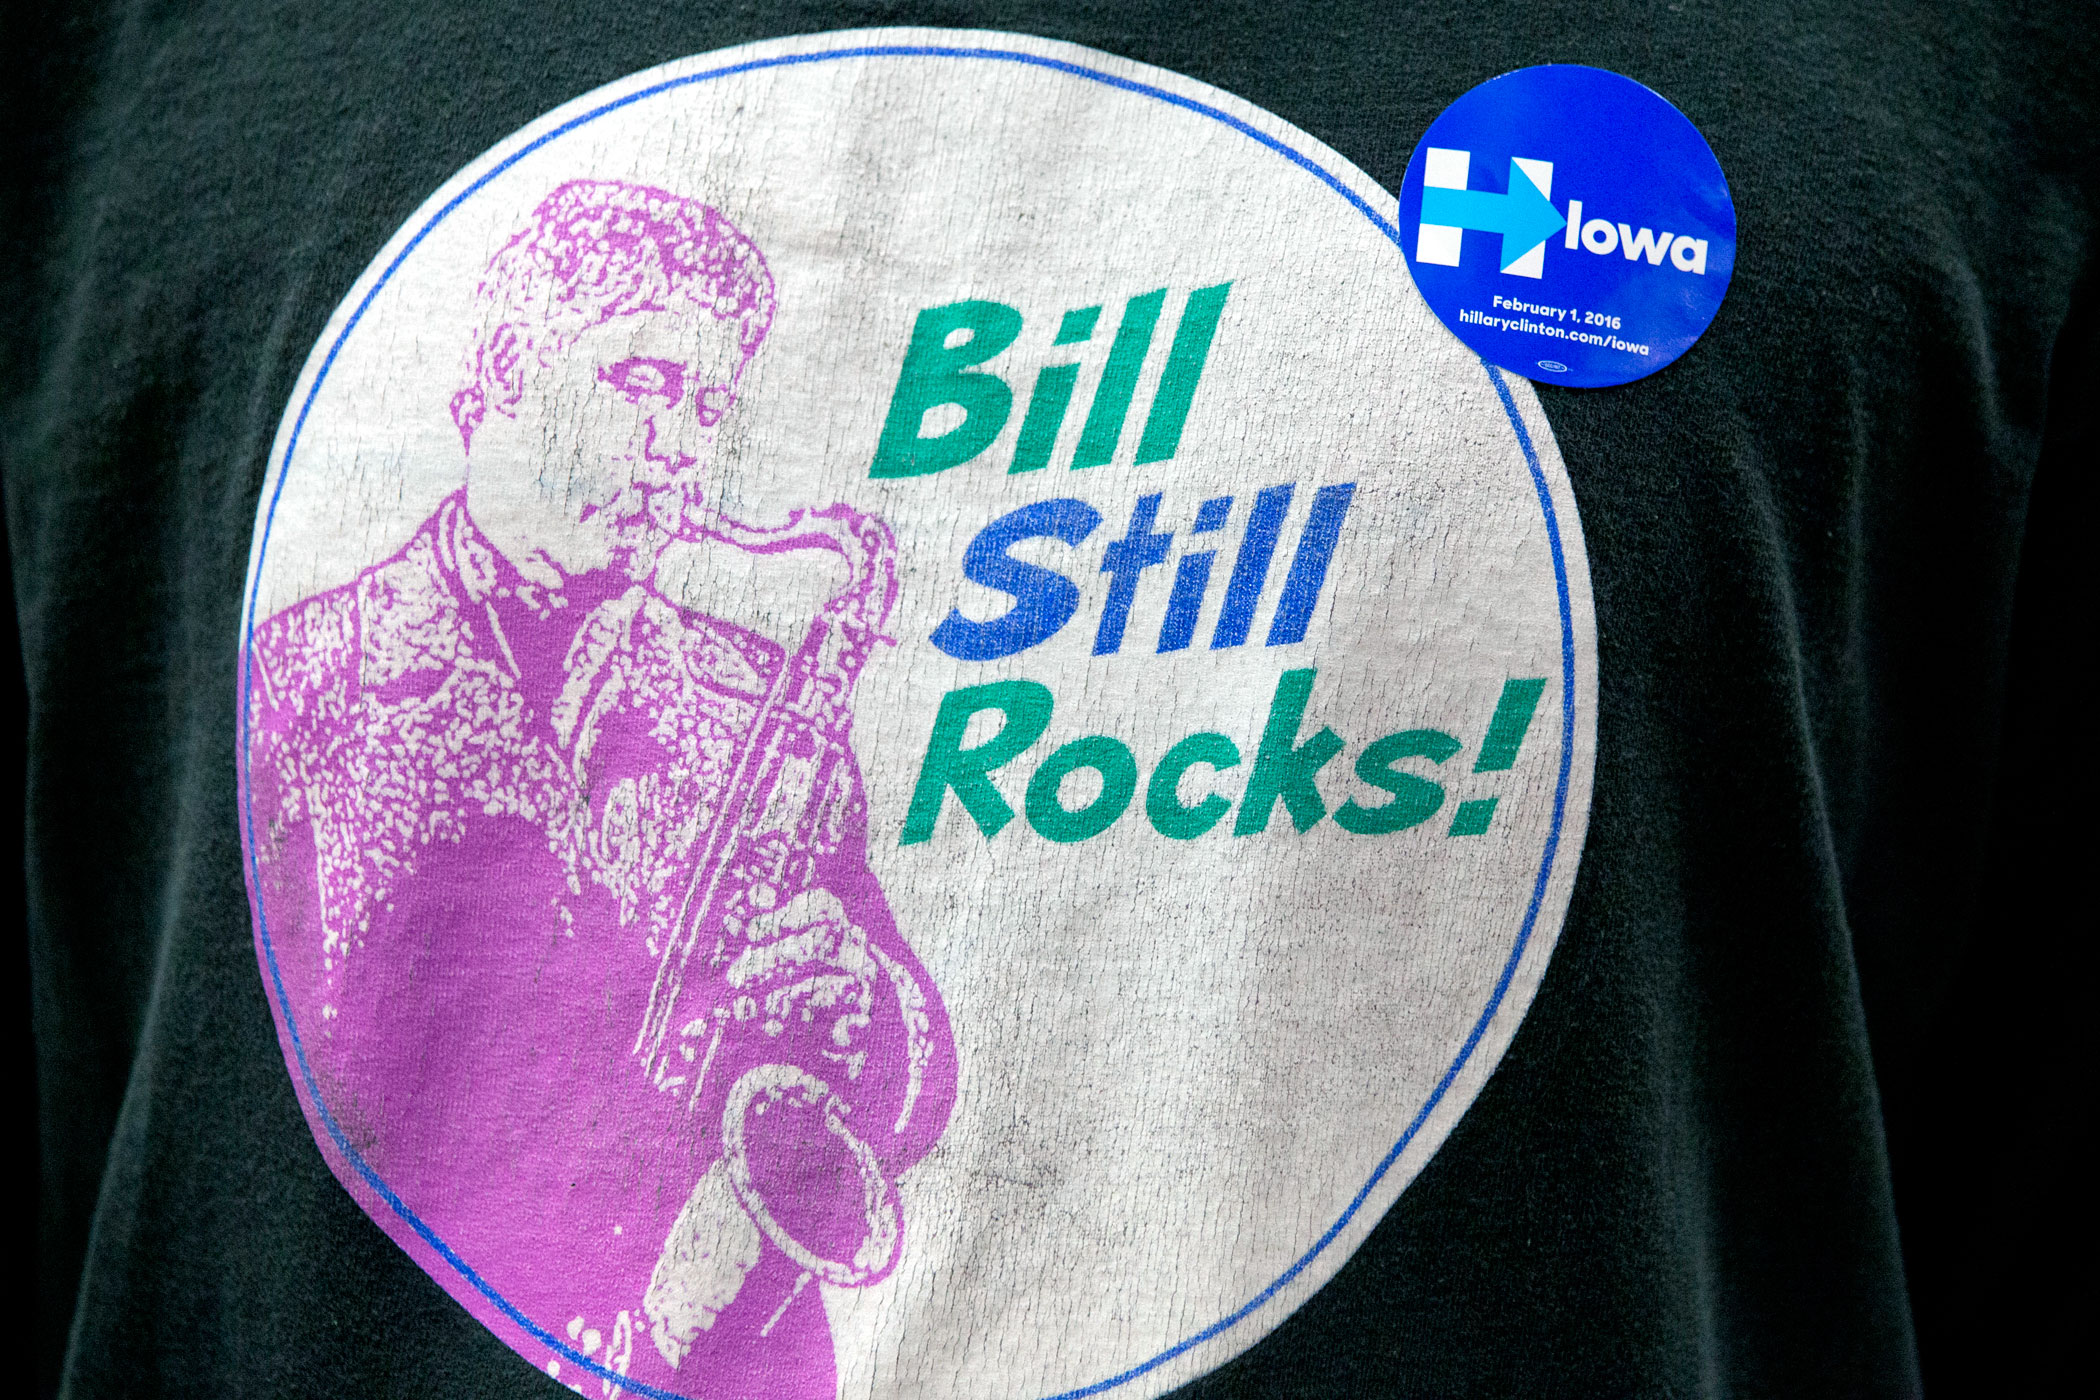 A Hillary Clinton supporter wears a T-shirt featuring Bill Clinton playing the saxophone during a campaign event at the Keokuk Middle School on Jan. 28, 2016, in Keokuk, Iowa.